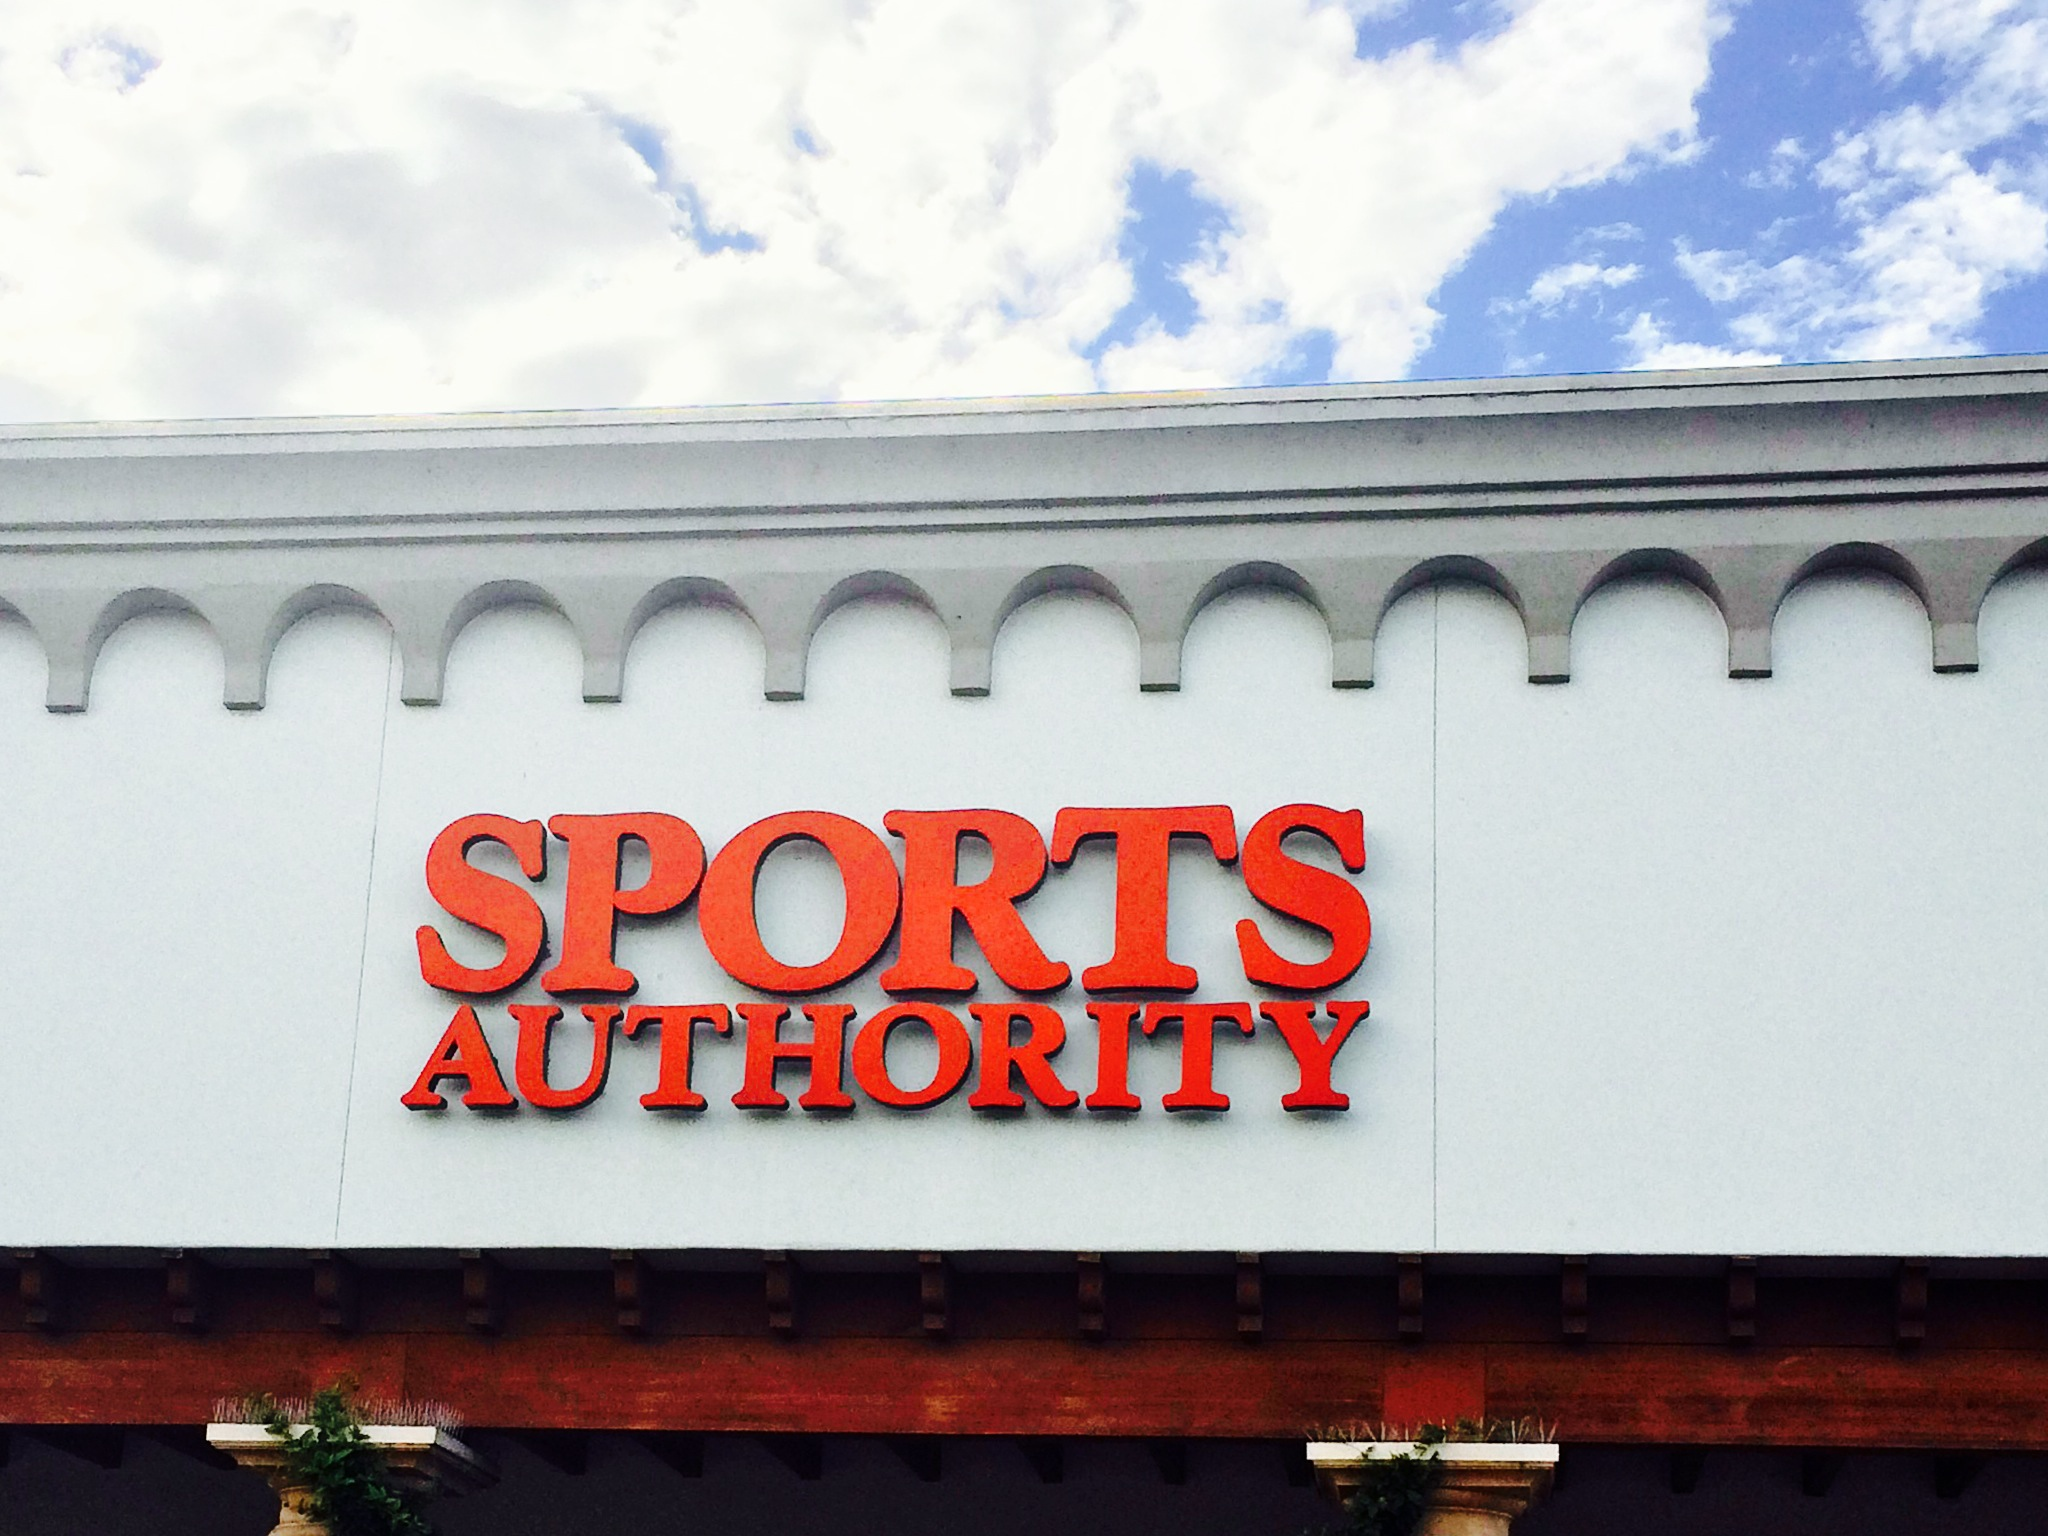 Sports Authority storefront sign